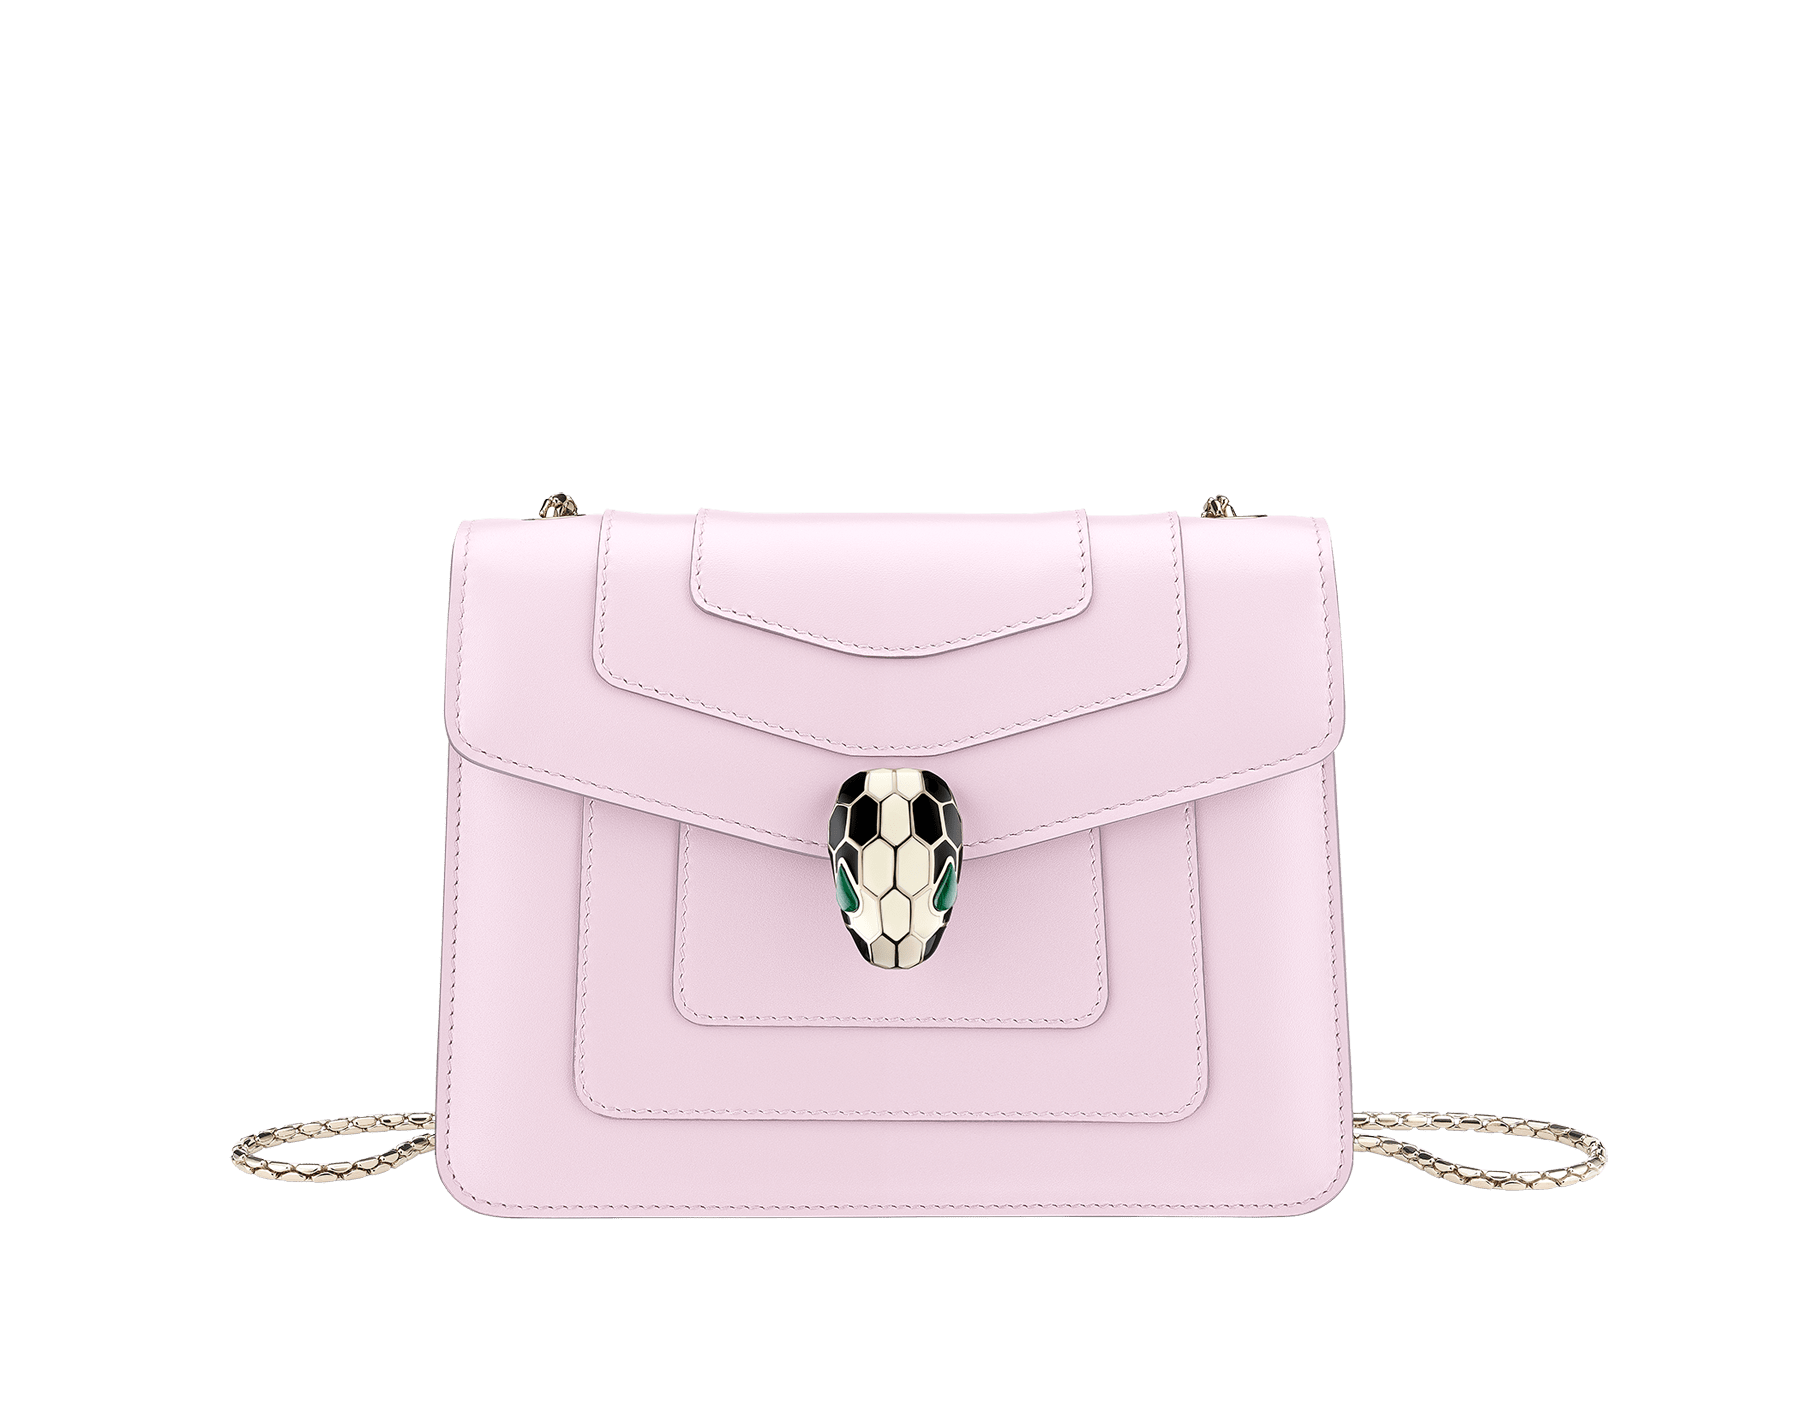 """Serpenti Forever "" crossbody bag in carmine jasper calf leather. Iconic snakehead closure in light gold plated brass enriched with black and white enamel and green malachite eyes 422-CLc image 1"